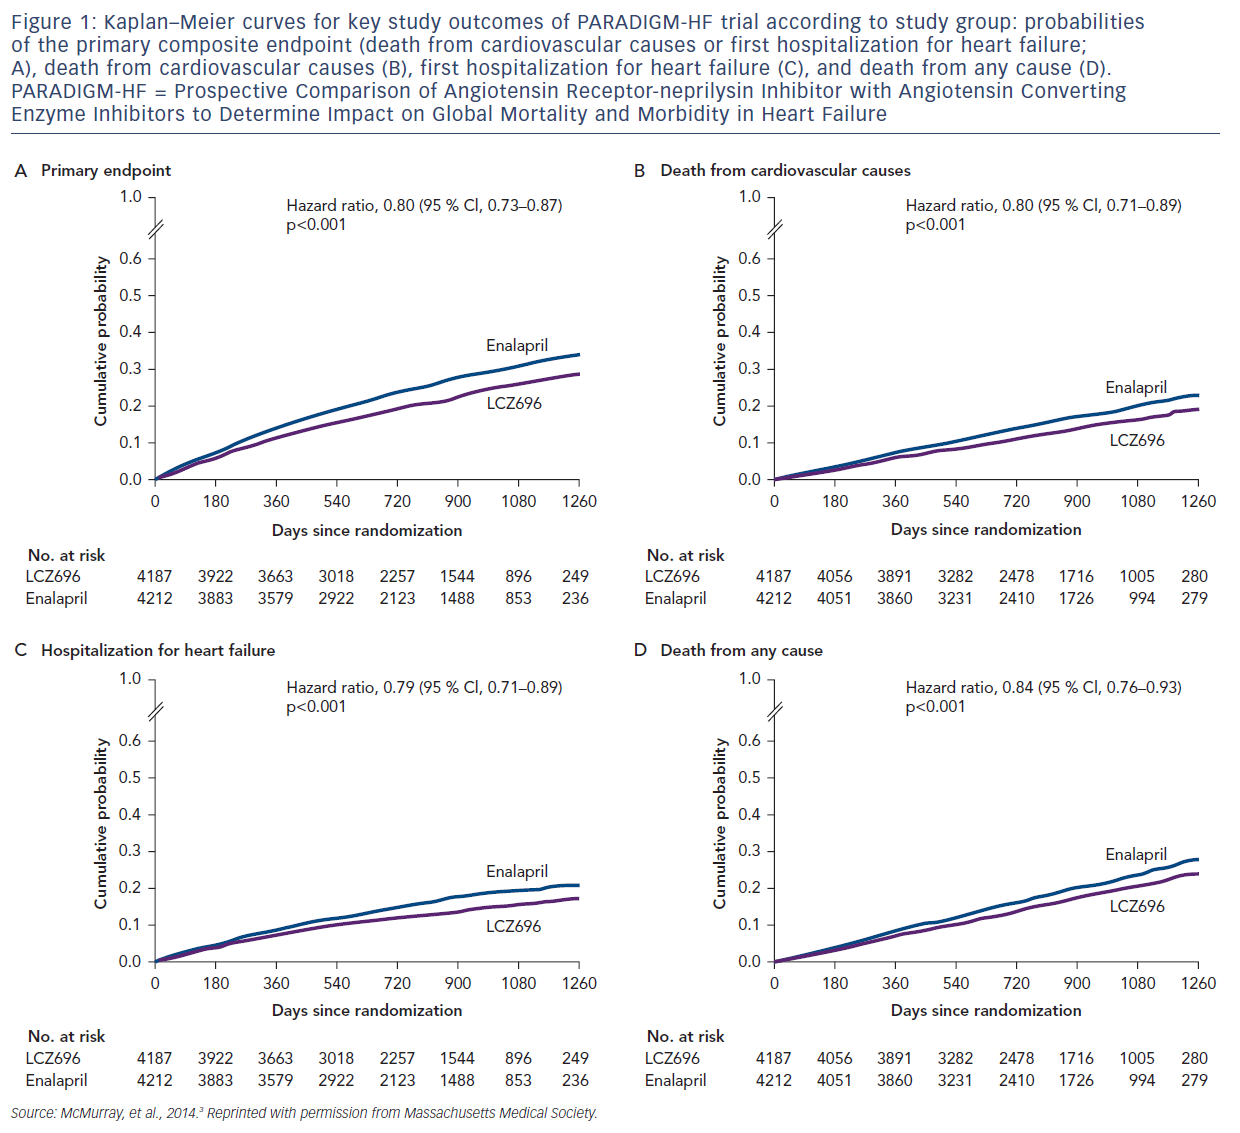 Figure 1: Kaplan–Meier curves for key study outcomes of PARADIGM-HF trial according to study group